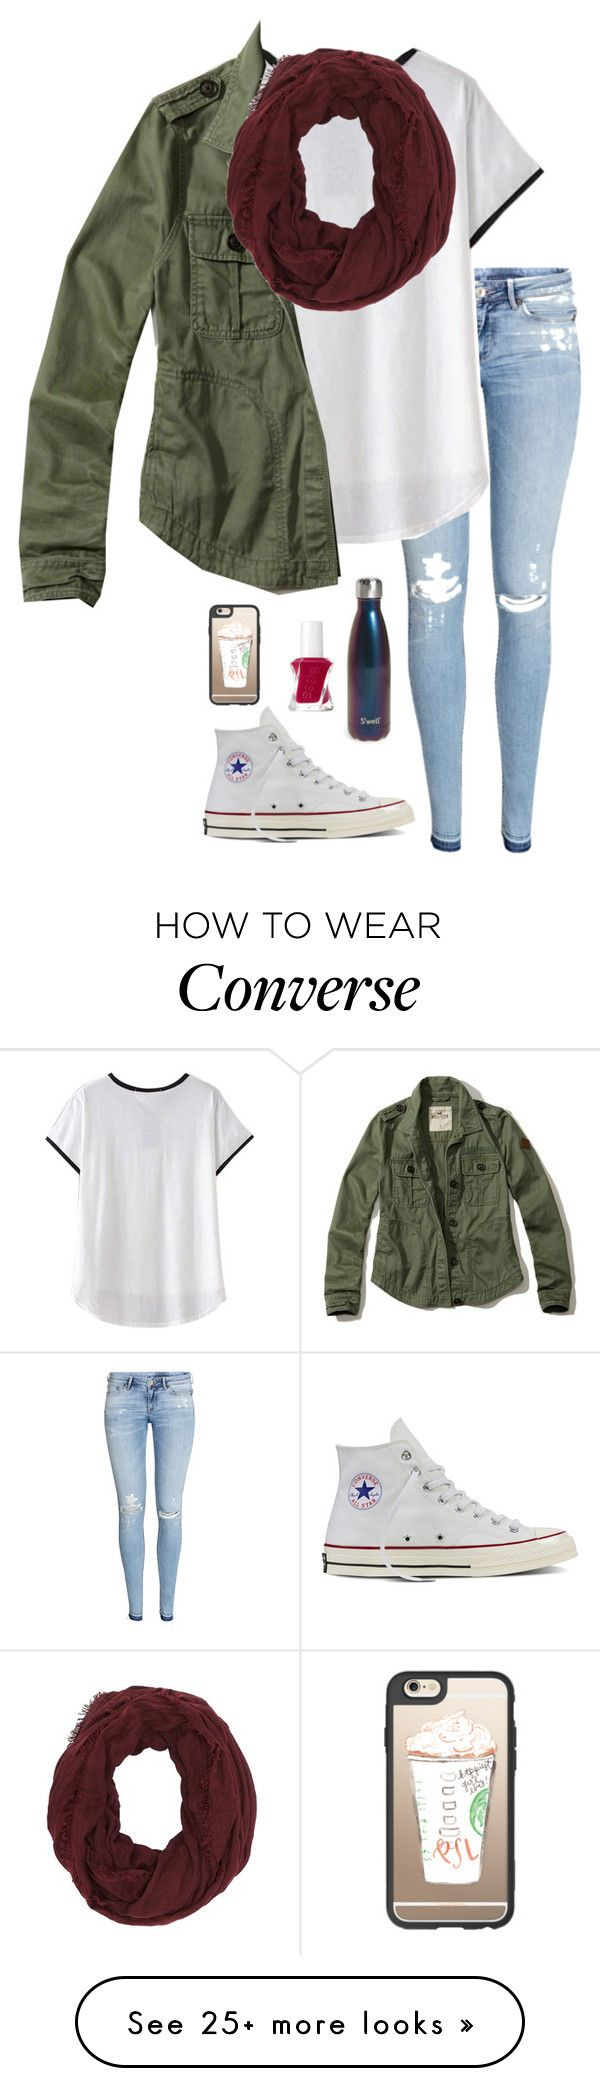 """""""Day 3- photo shoot"""" by eadurbala08 on Polyvore featuring H&M, Hollister Co., Converse, S'well, Essie, Casetify and Charlotte Russe"""